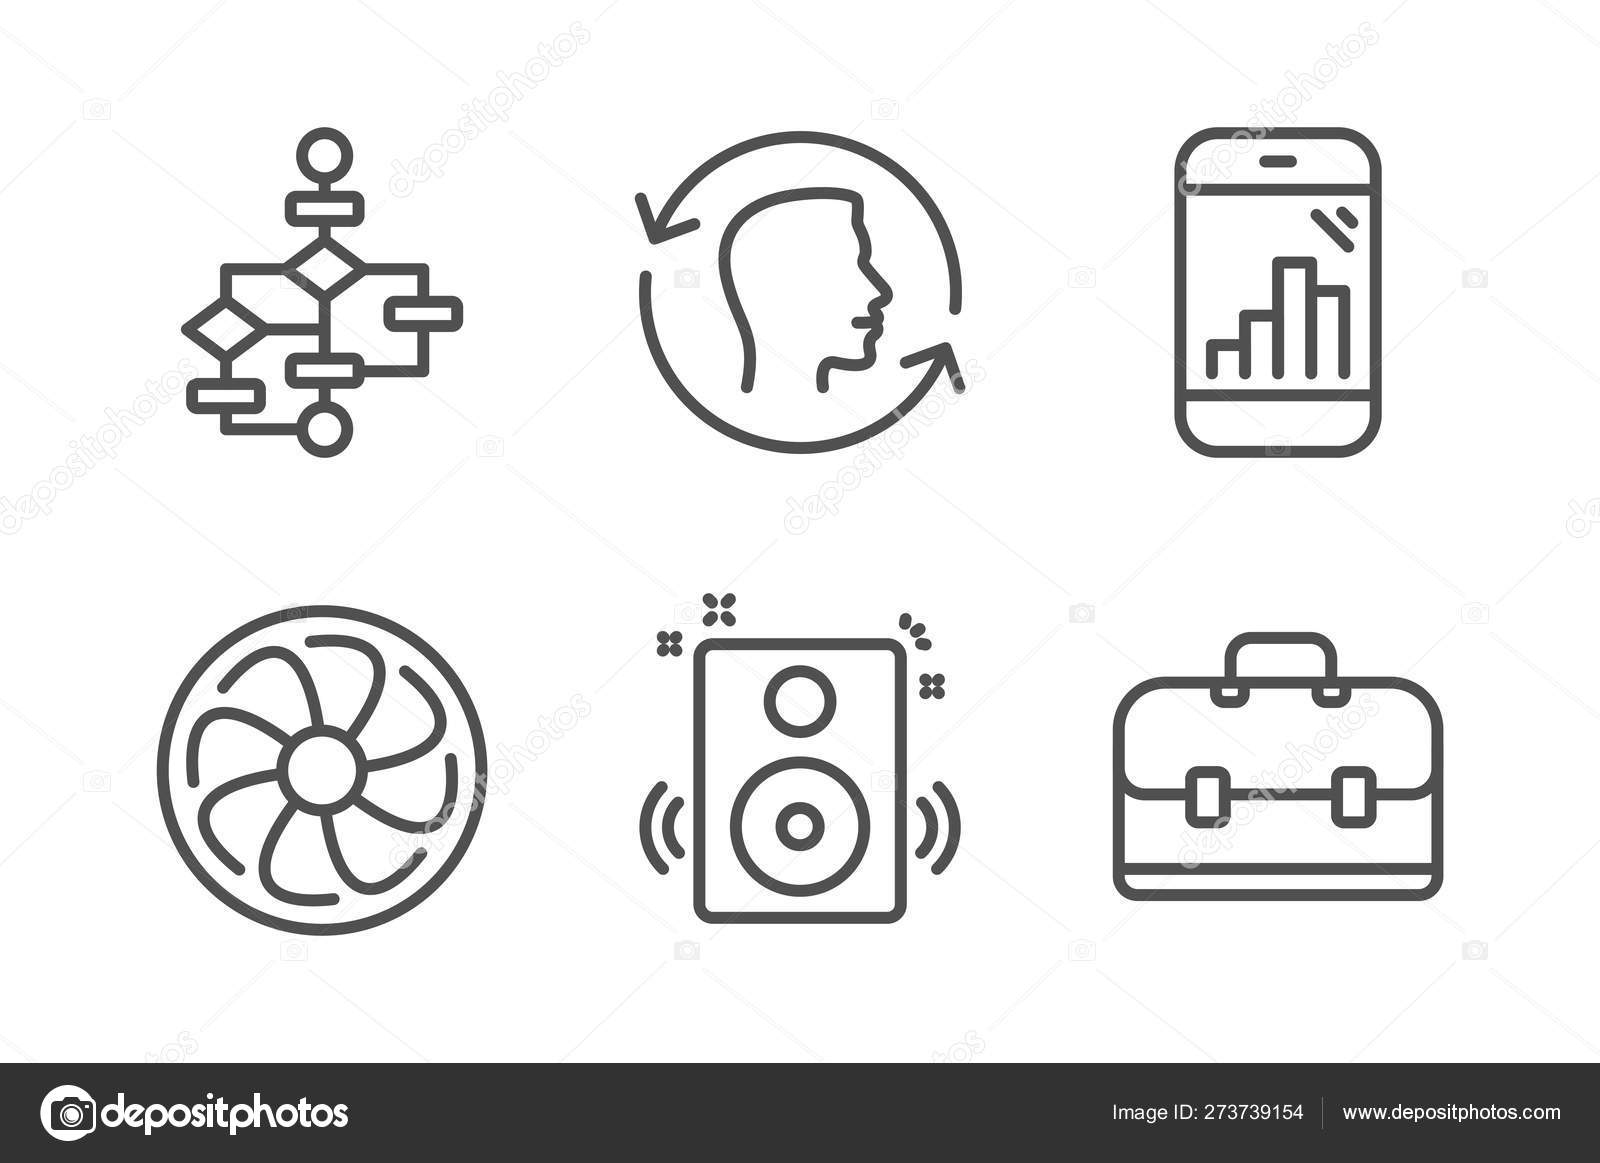 hight resolution of speakers face id and block diagram icons set fan engine graph simple engine block diagram